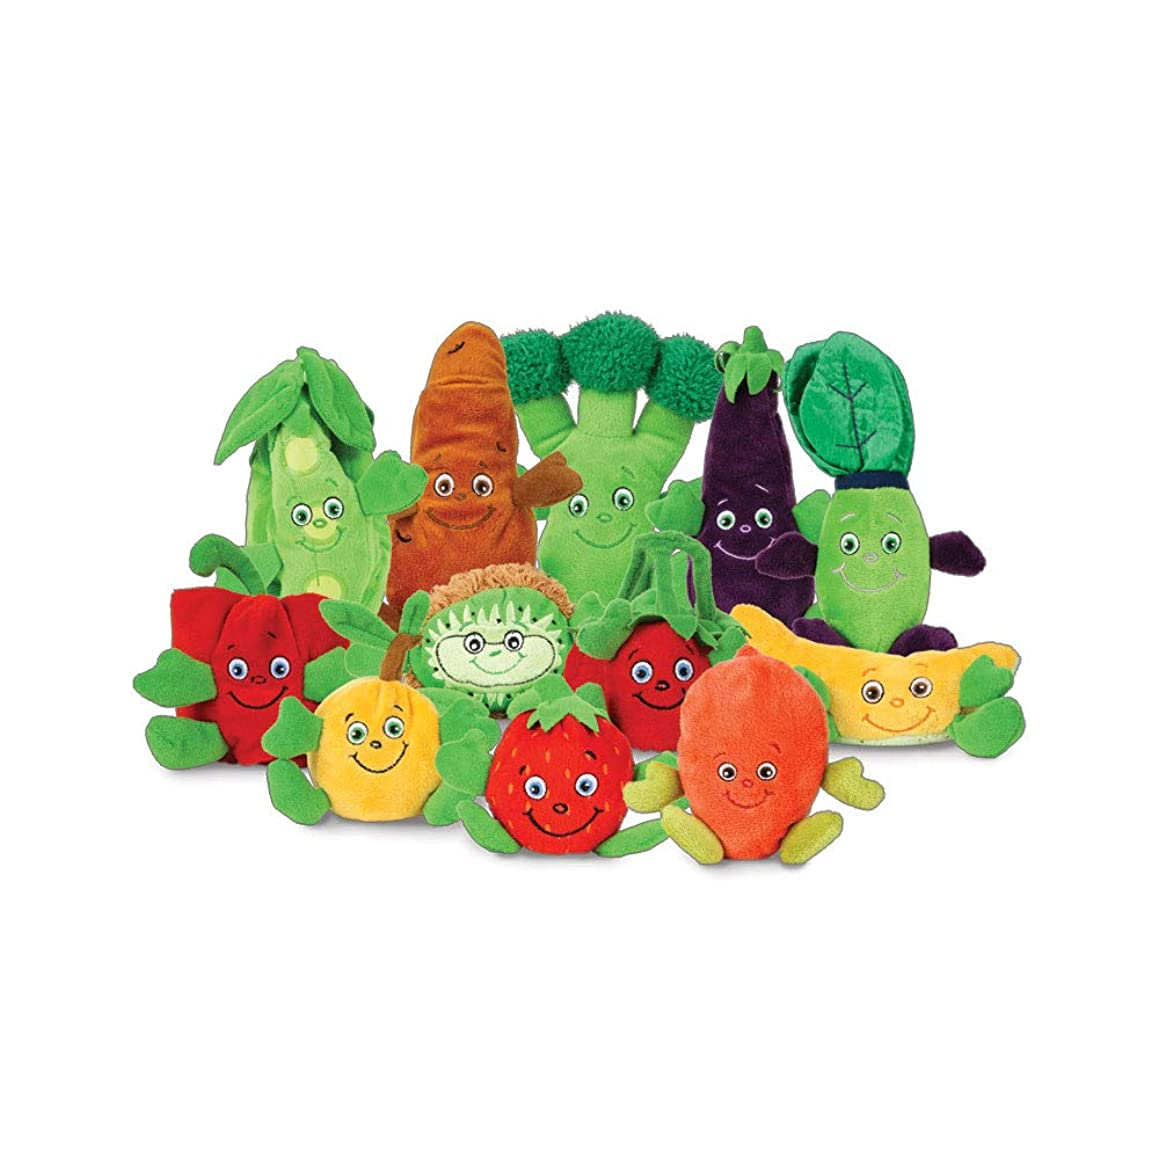 Learning Zonexpress Fruit and Veggie Plush Toys-Healthy Games for Kids | Garden Heroes Plush Characters